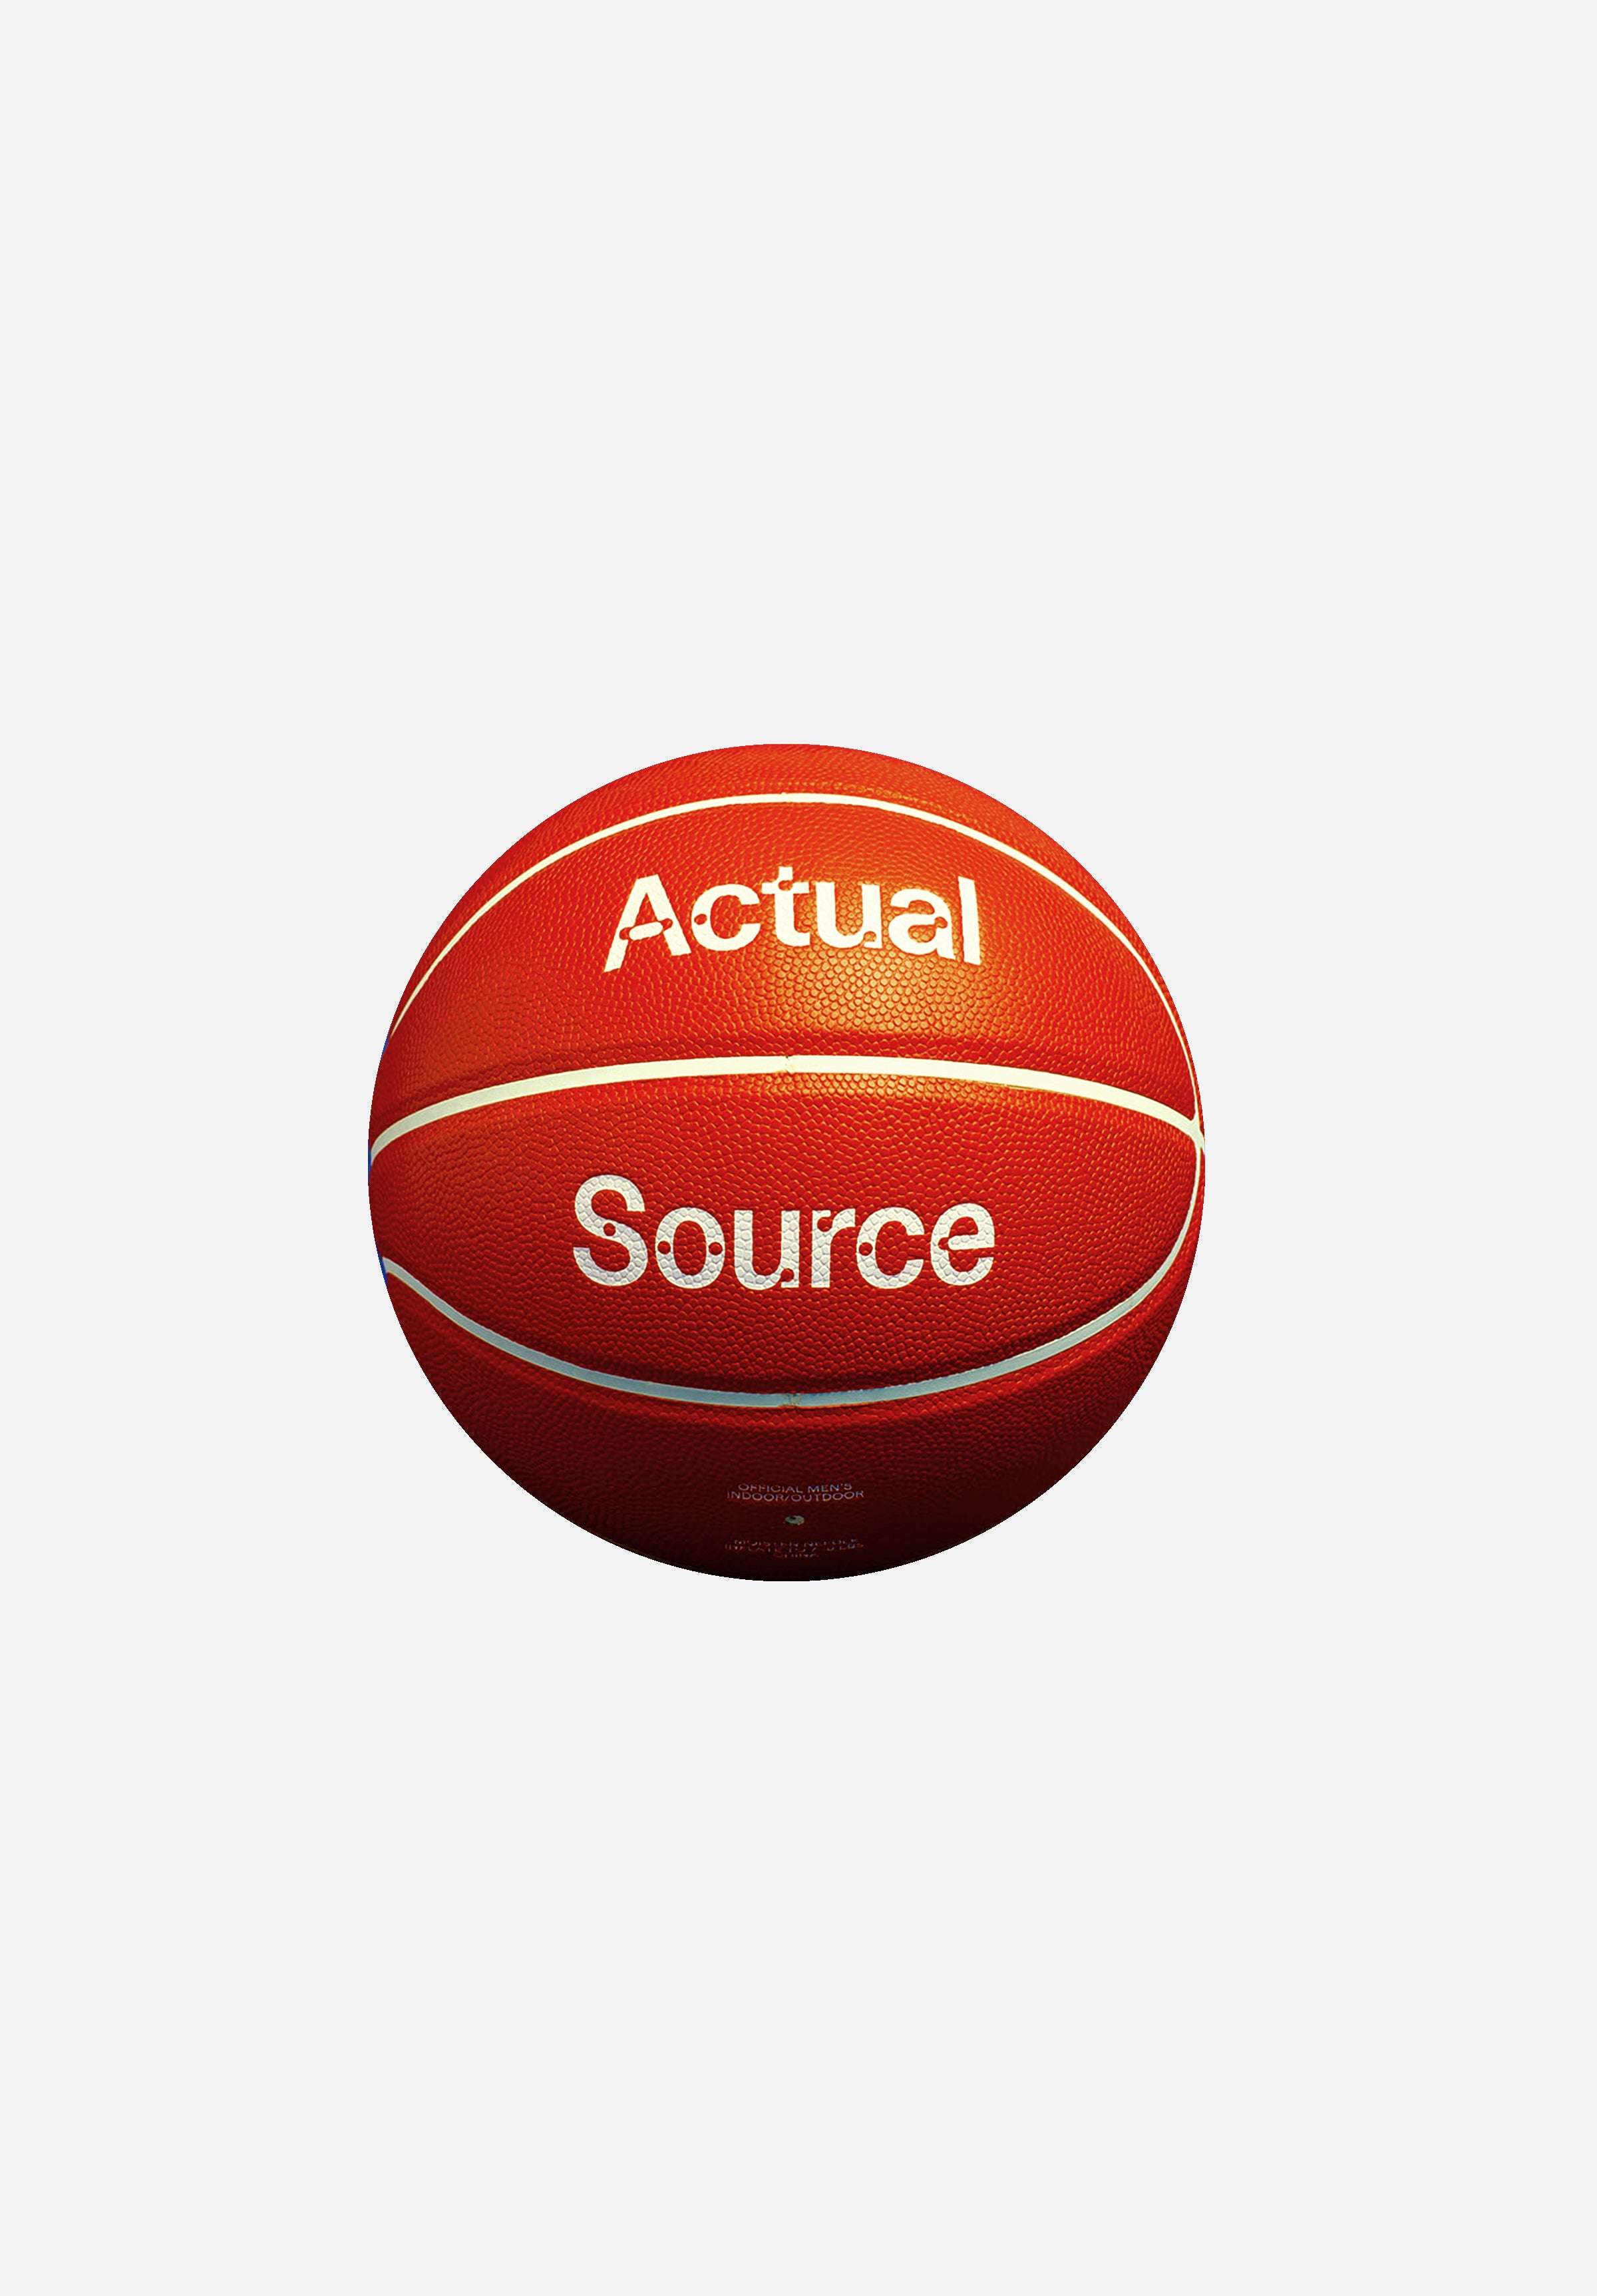 SL8 Basketball-Actual Source-Average